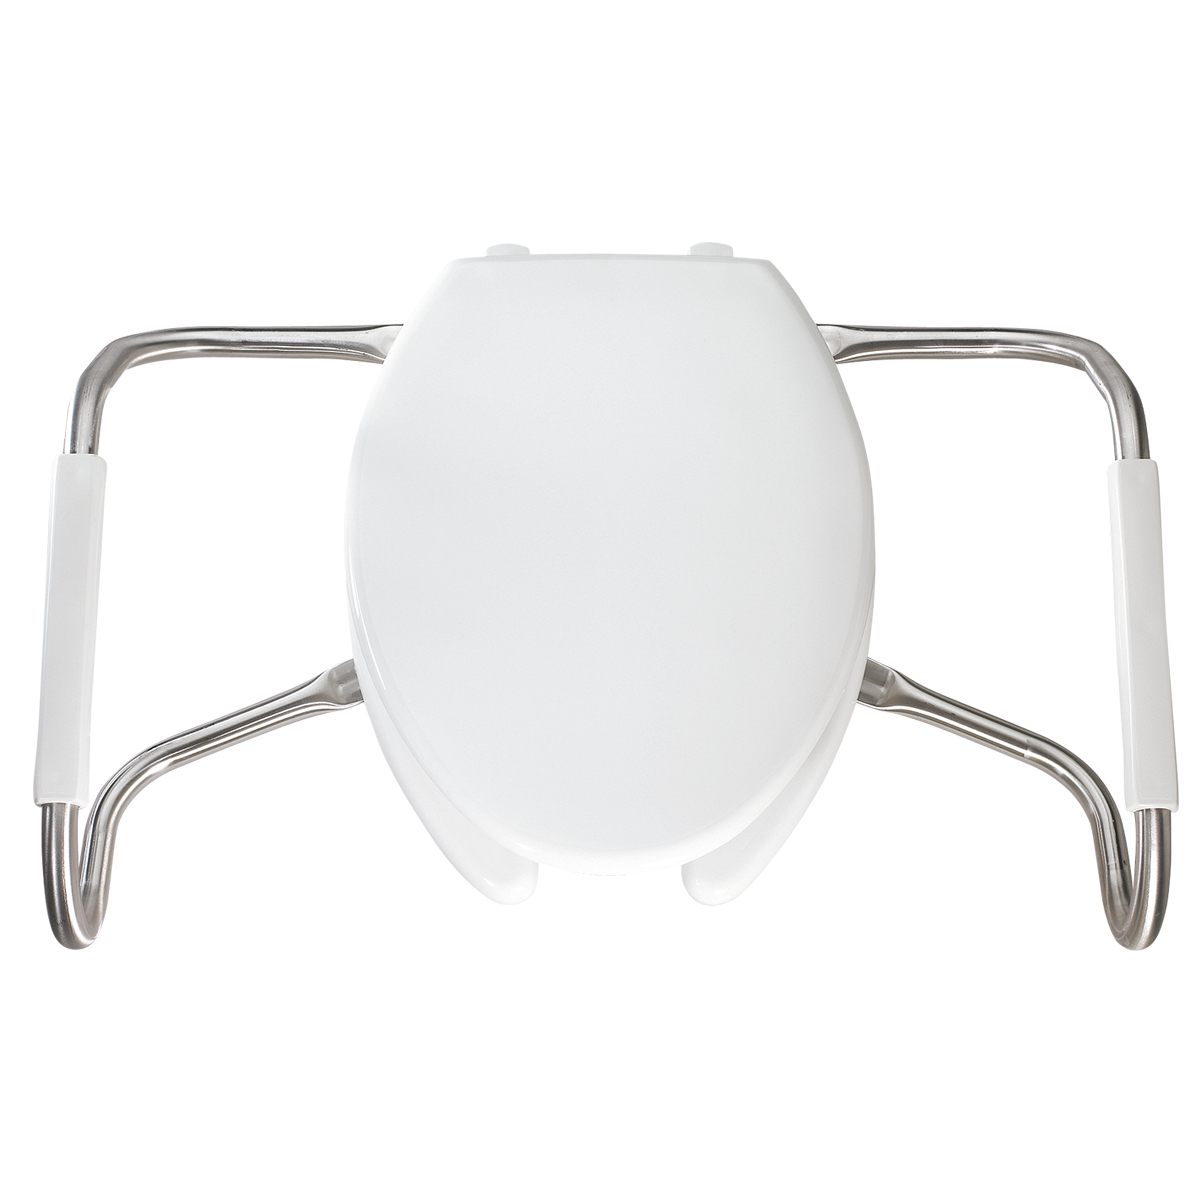 Elongated Plastic Open Front With Cover Medic Aid Toilet Seat with STA TITE, DuraGuard and Stainless Steel Safety Side Arms White